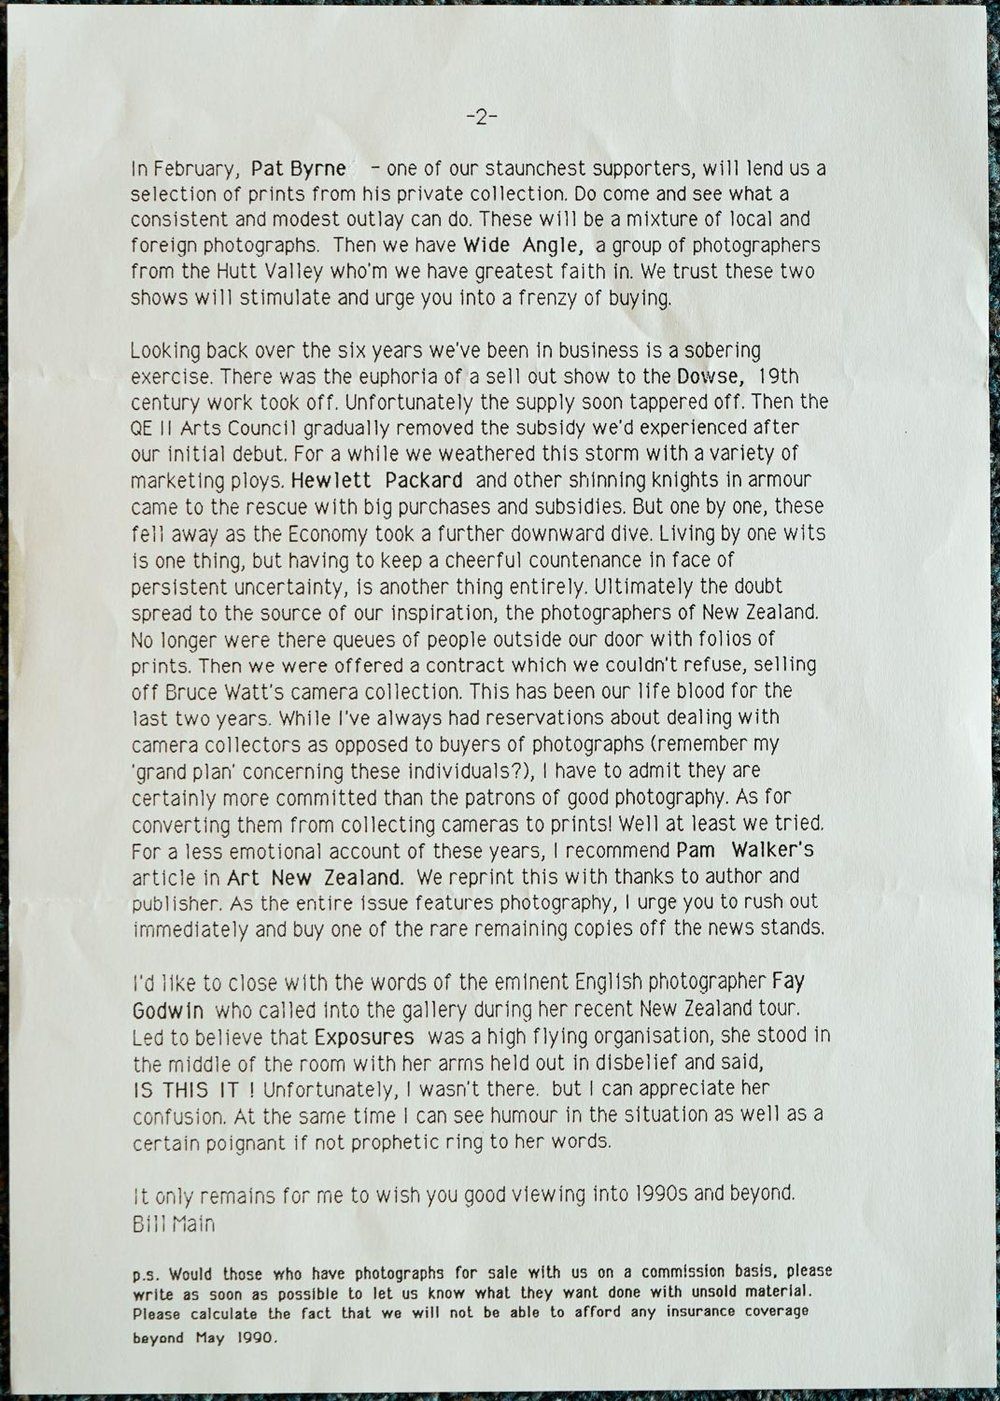 Exposures Gallery Newsletter No.24, Undated (January 1990 ?)